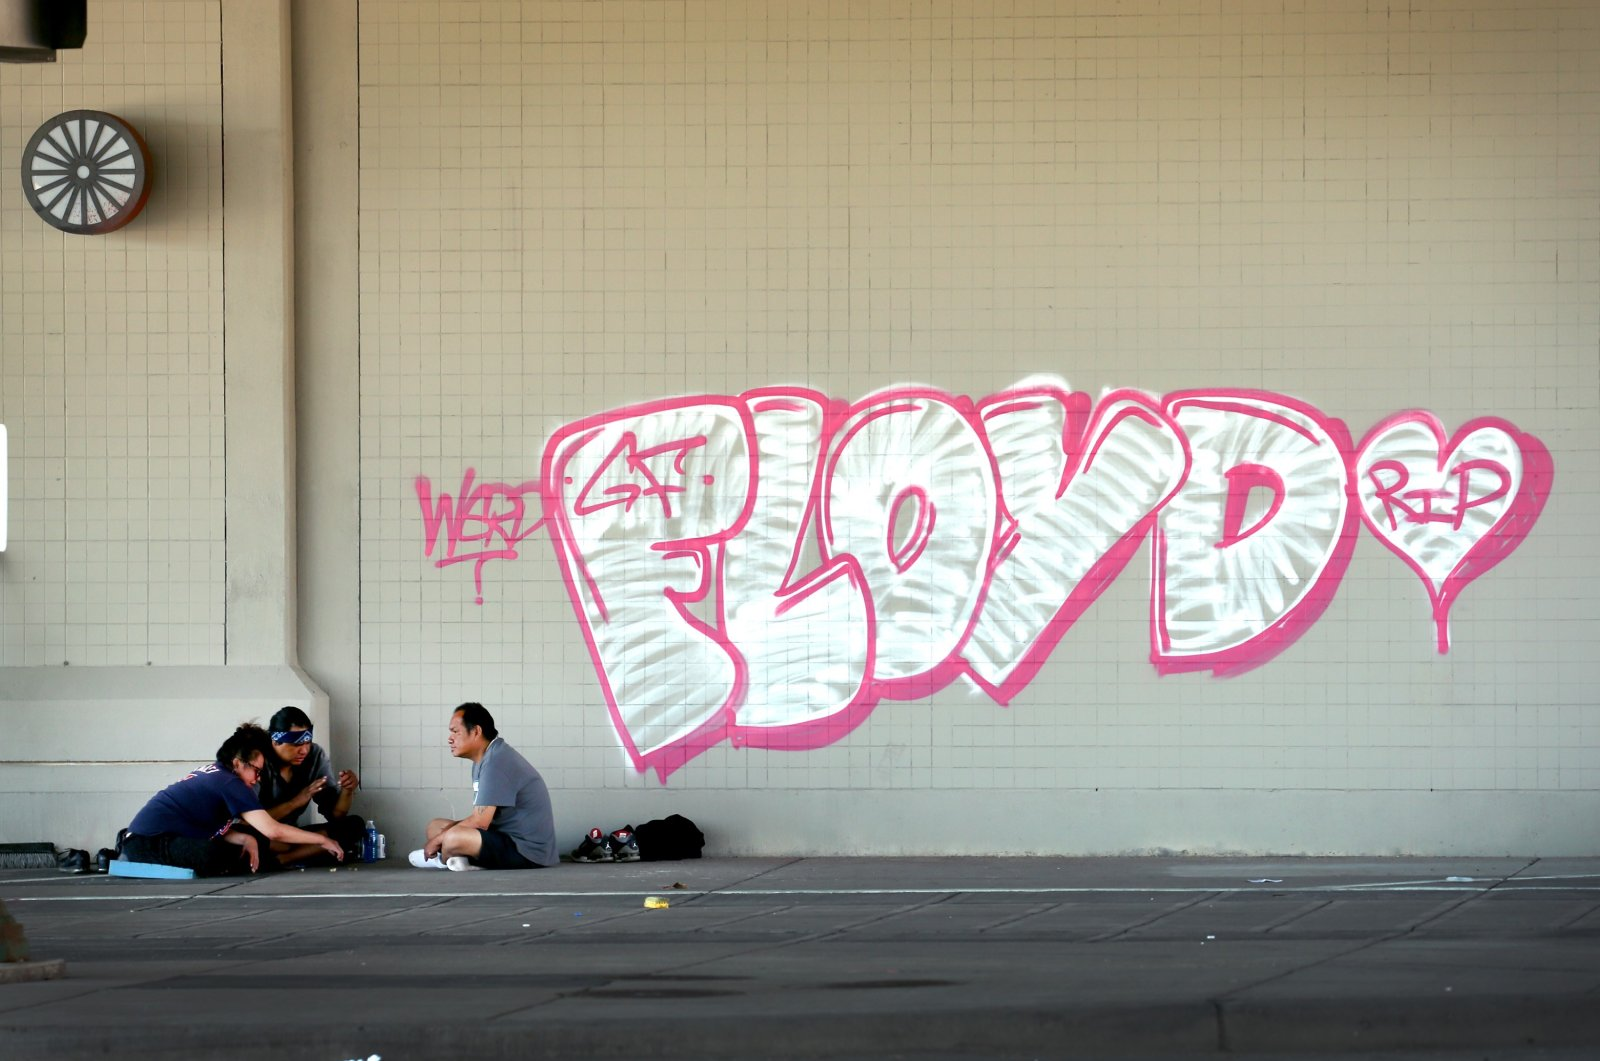 Graffiti remains on the wall of an underpass following last week's rioting on June 3, 2020, in Minneapolis, Minnesota. (AFP Photo)